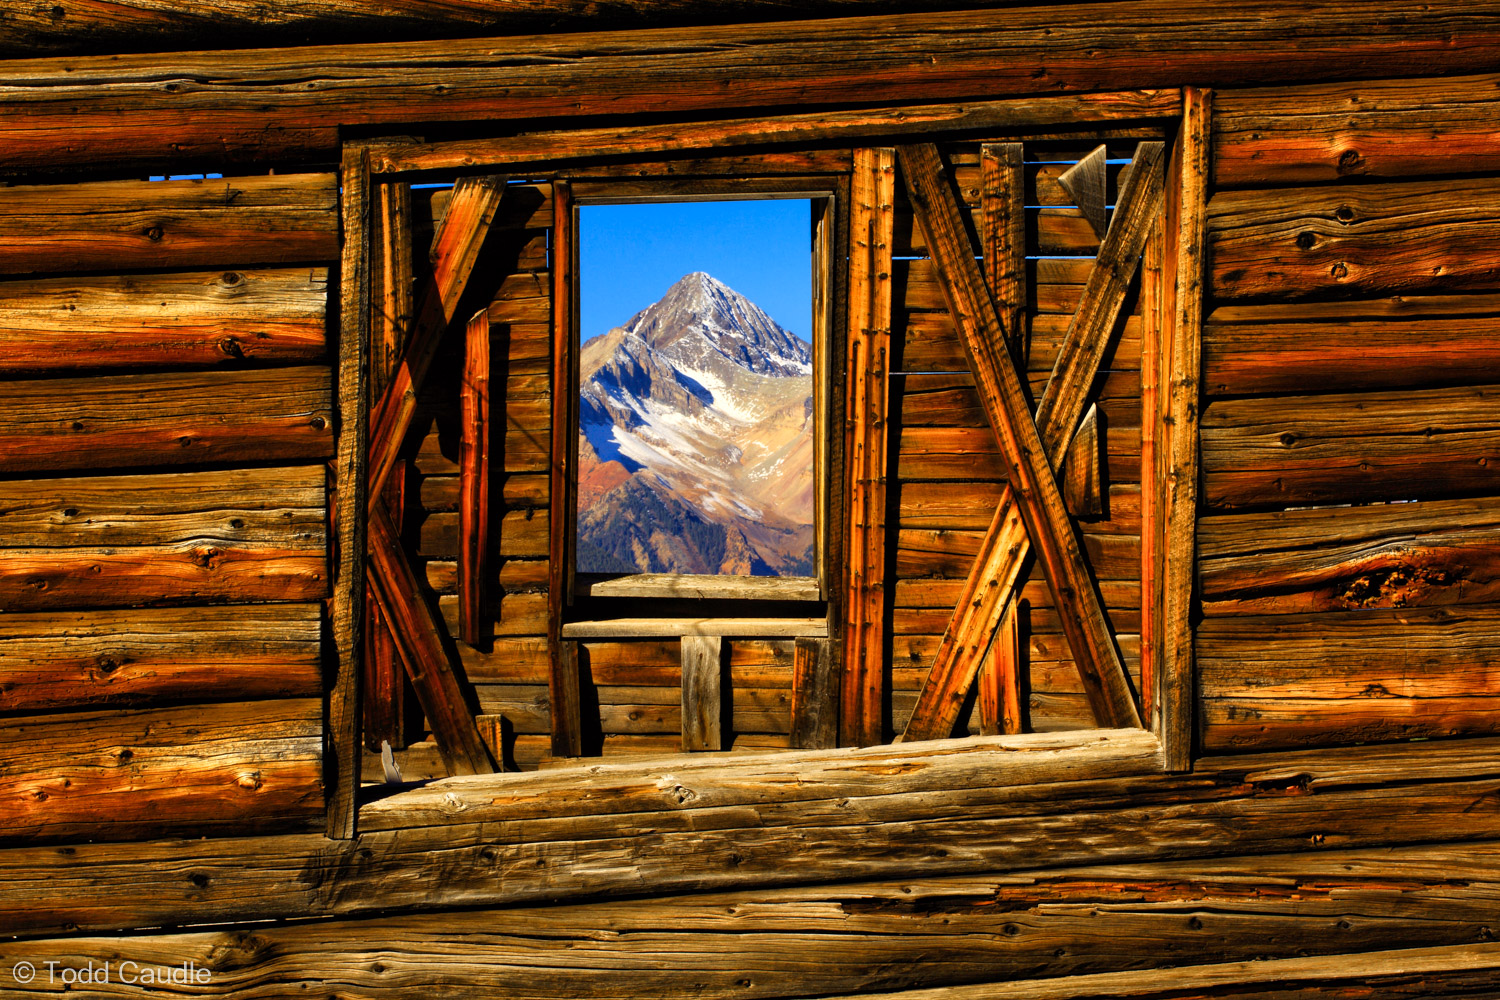 Wilson Peak looks like a picture hanging on a wall in this view through dual windows in an abandoned ghost town cabin.